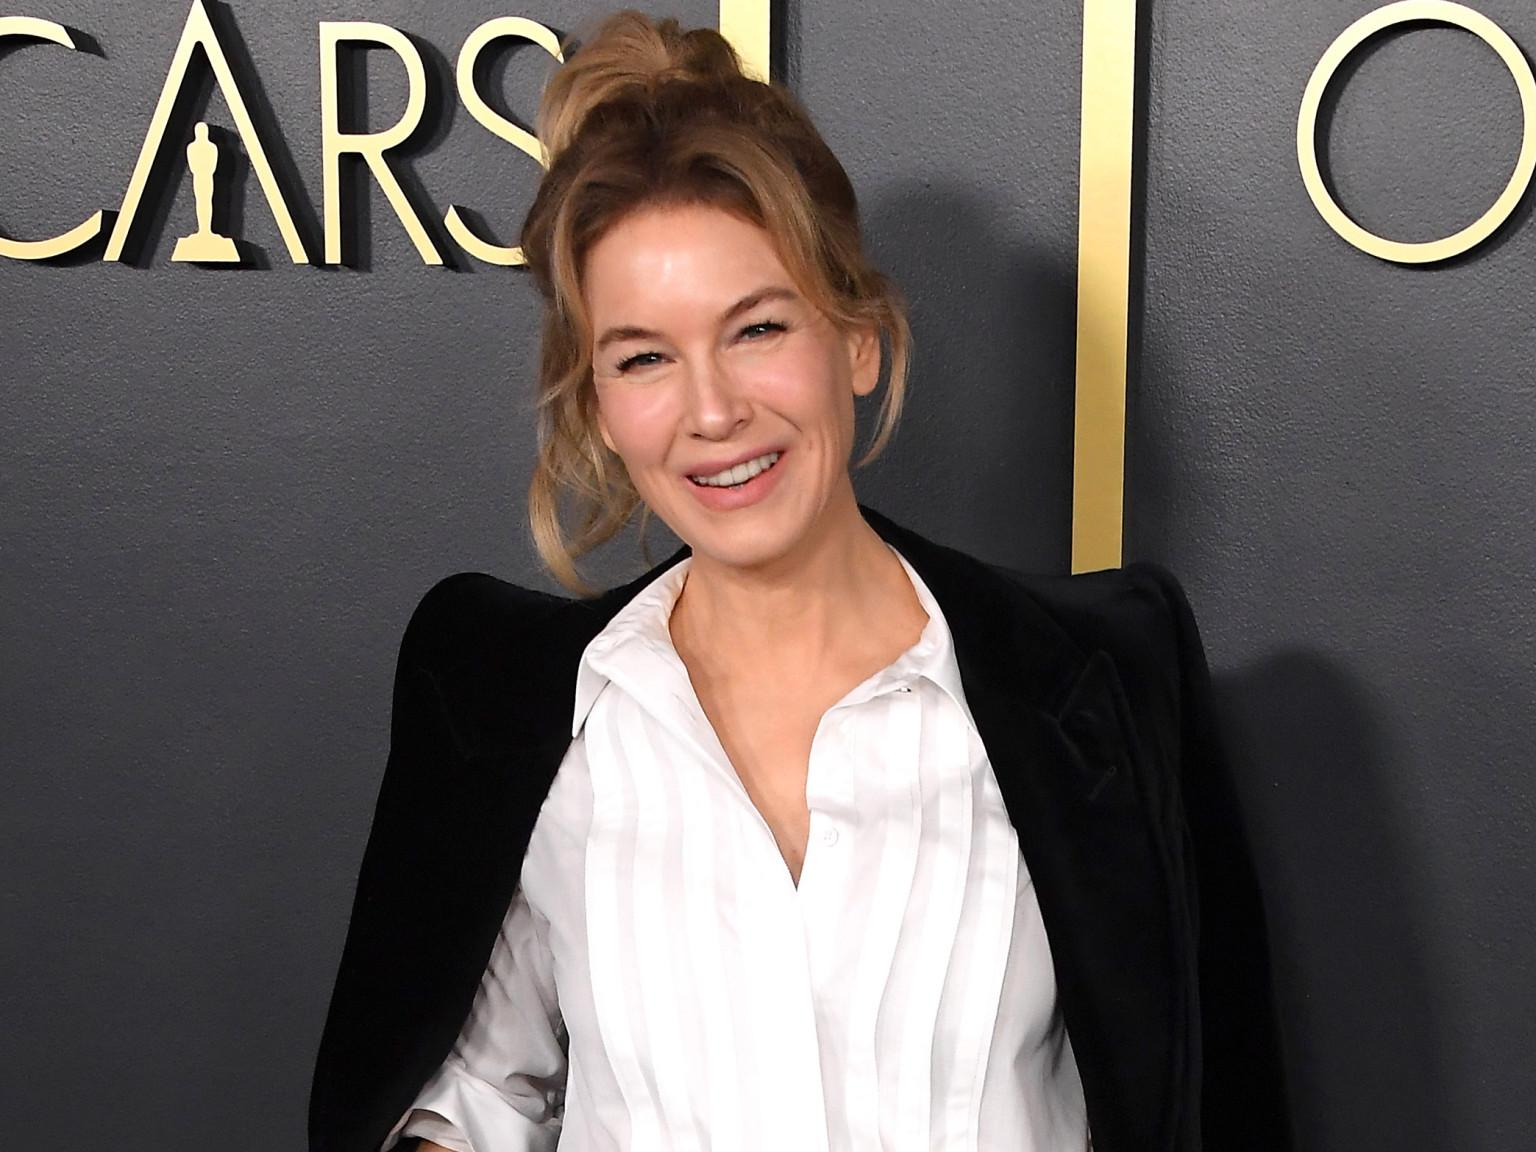 Renée Zellweger Doesn't Want to Geek Out at the Oscars Again